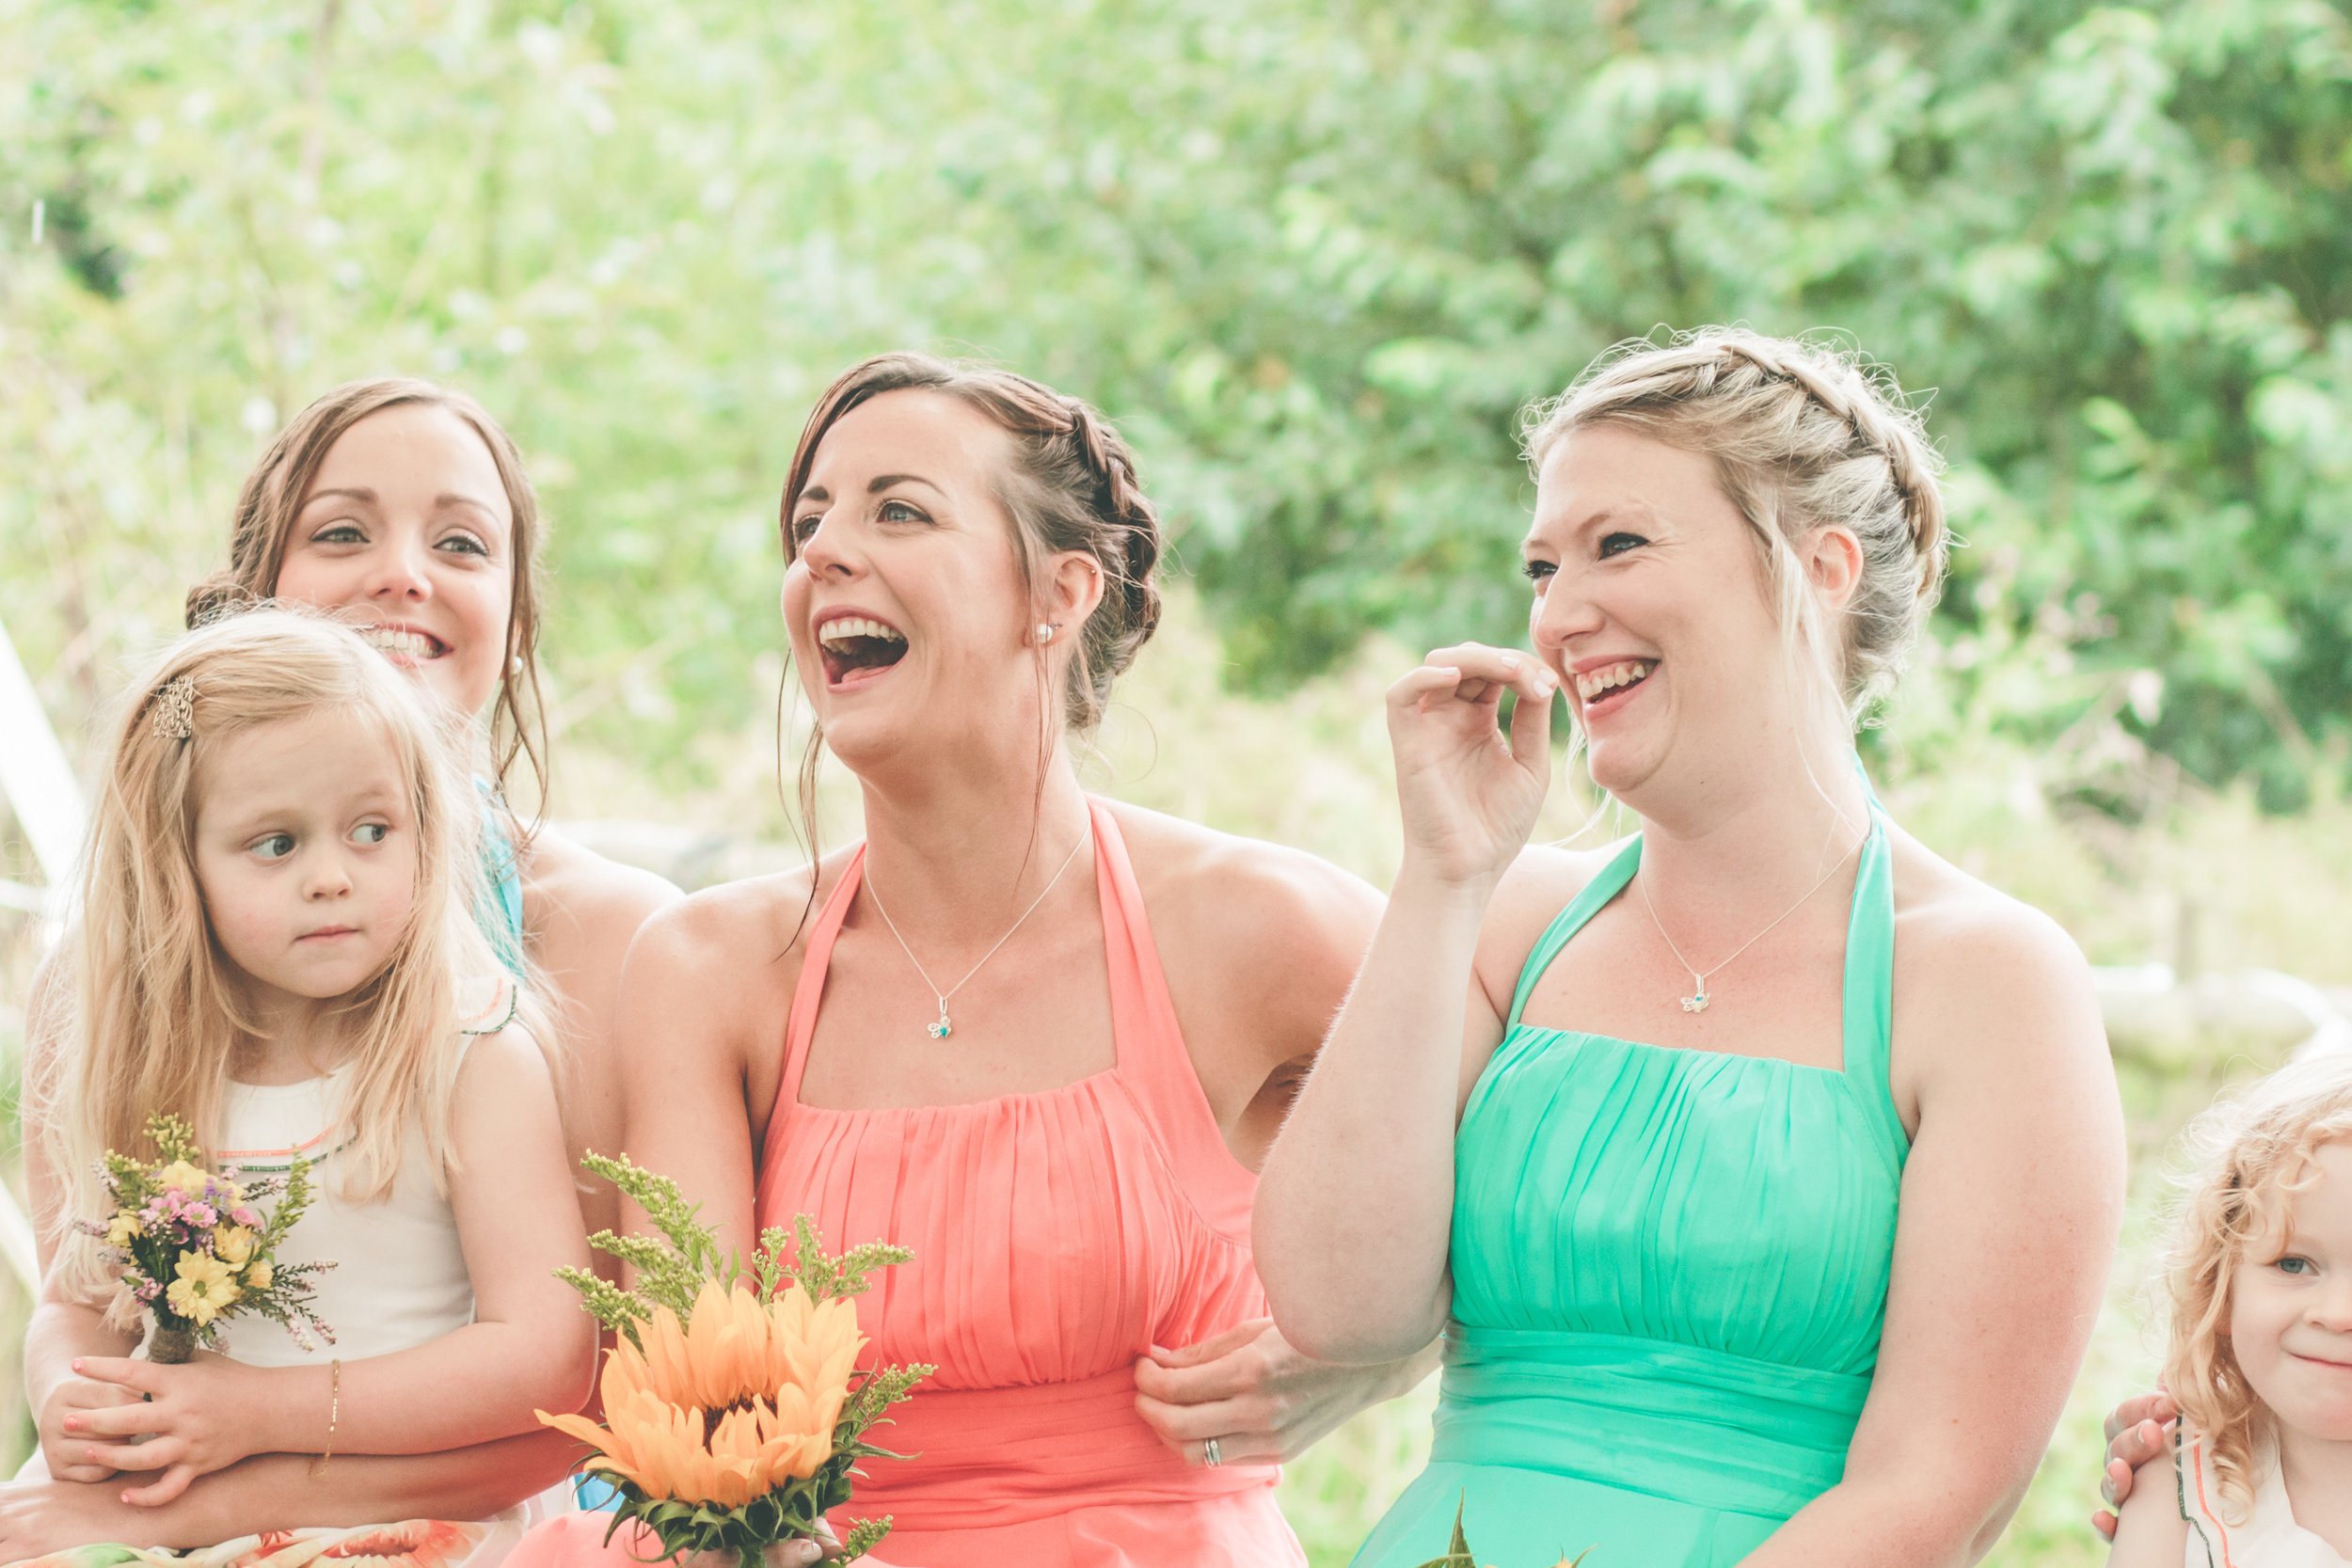 Sharing a laugh, alternative wedding